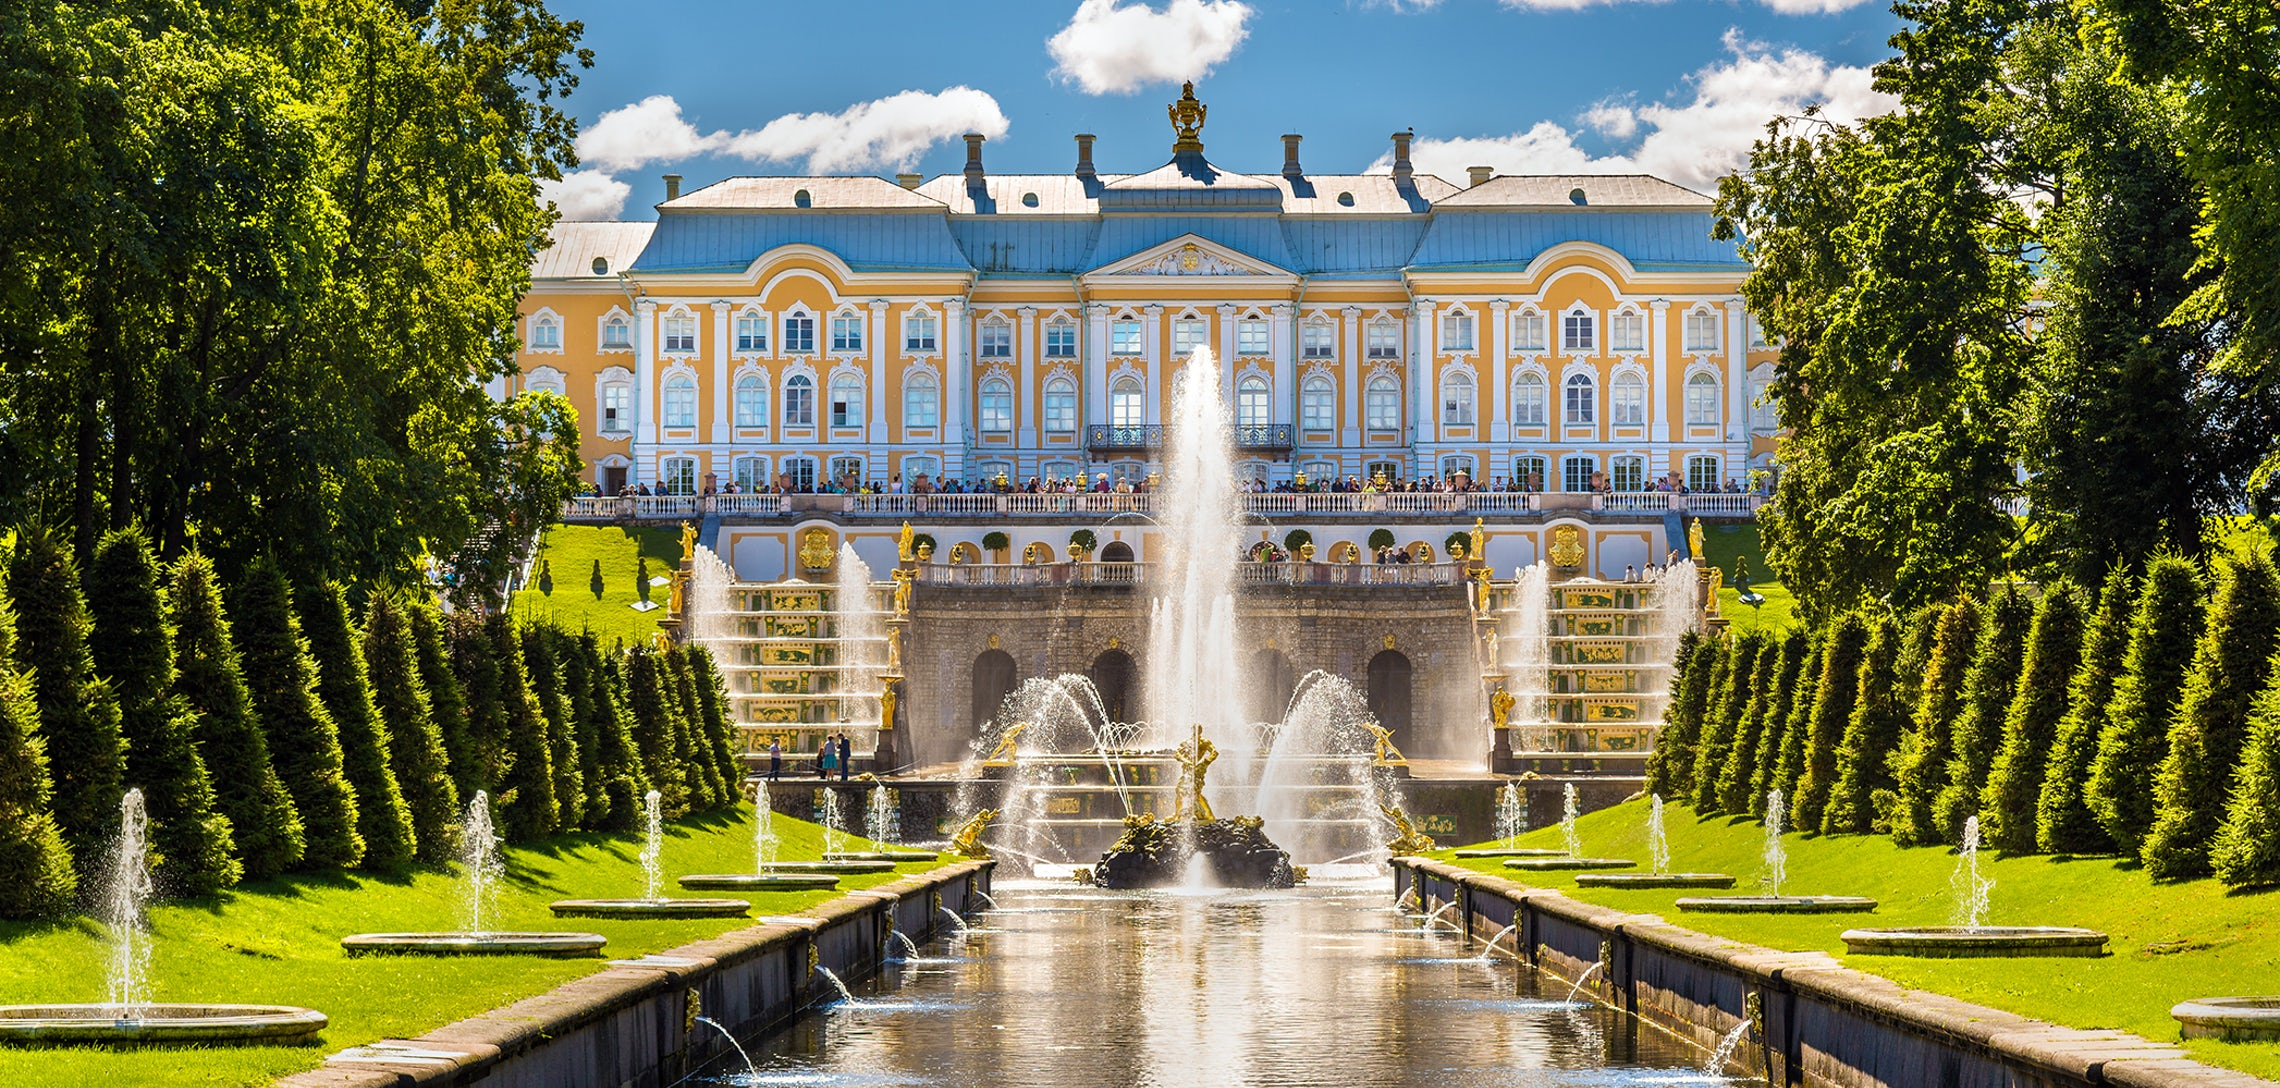 Travelers with locally organized Art Routes learned that Peterhof Palace was built by Peter the Great to rival Versailles.